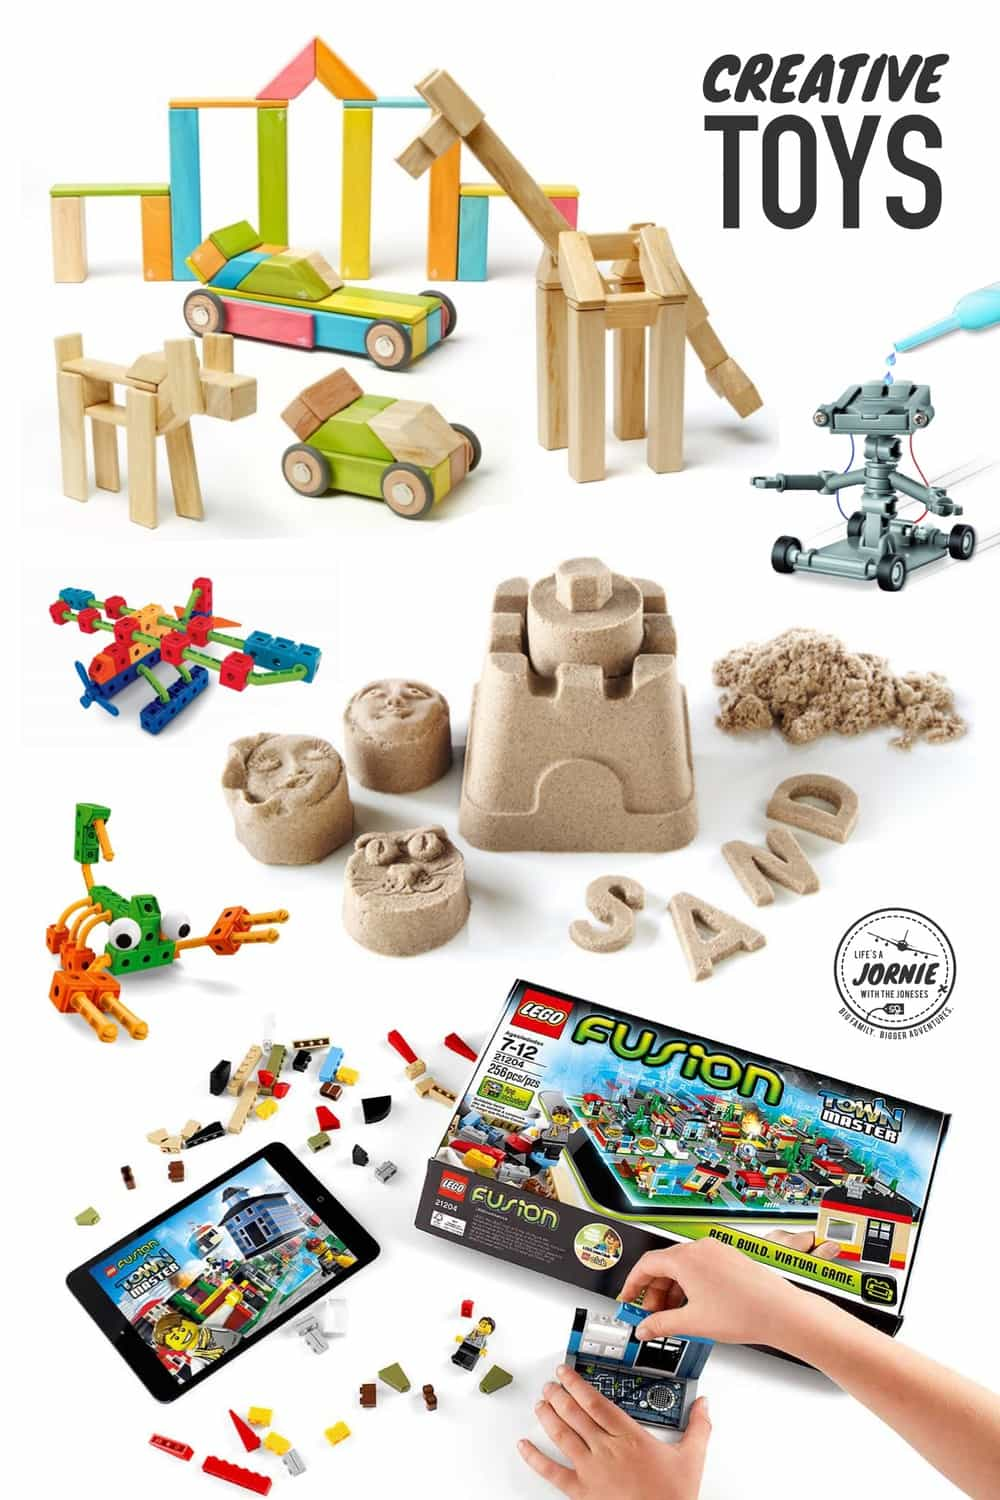 Creative Toys Your Kids Will Fall In Love With